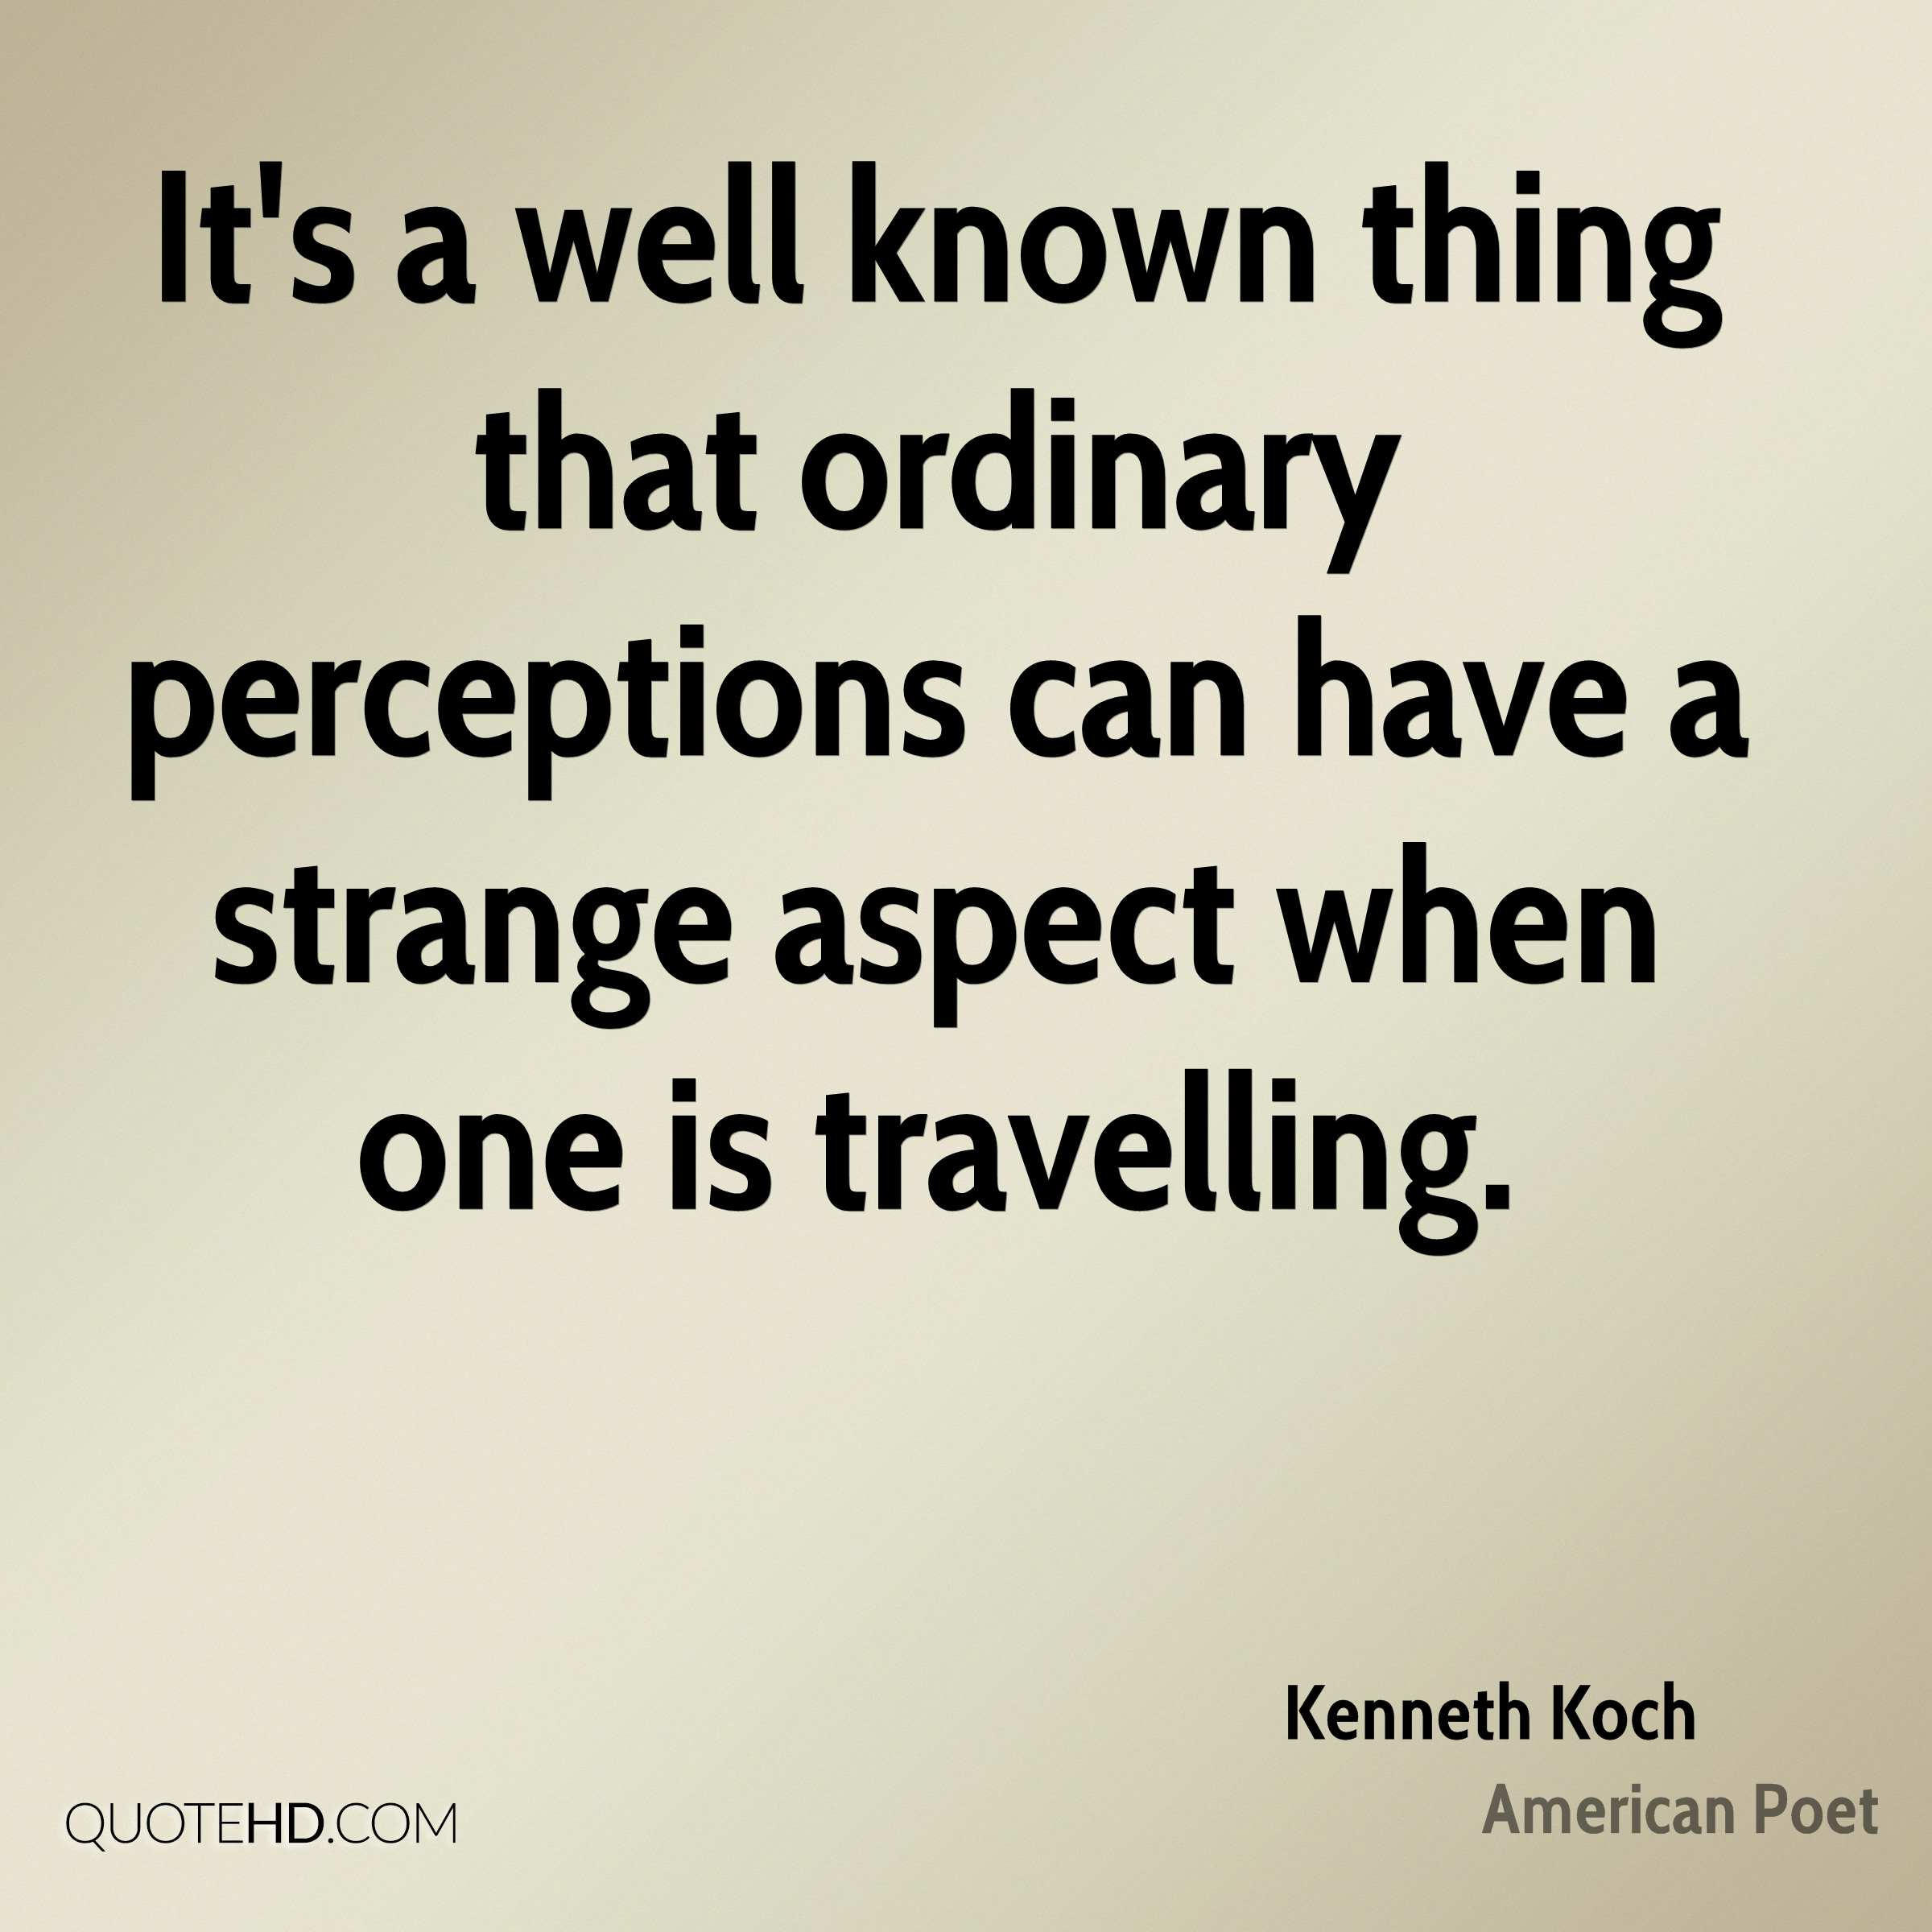 It's a well known thing that ordinary perceptions can have a strange aspect when one is travelling.